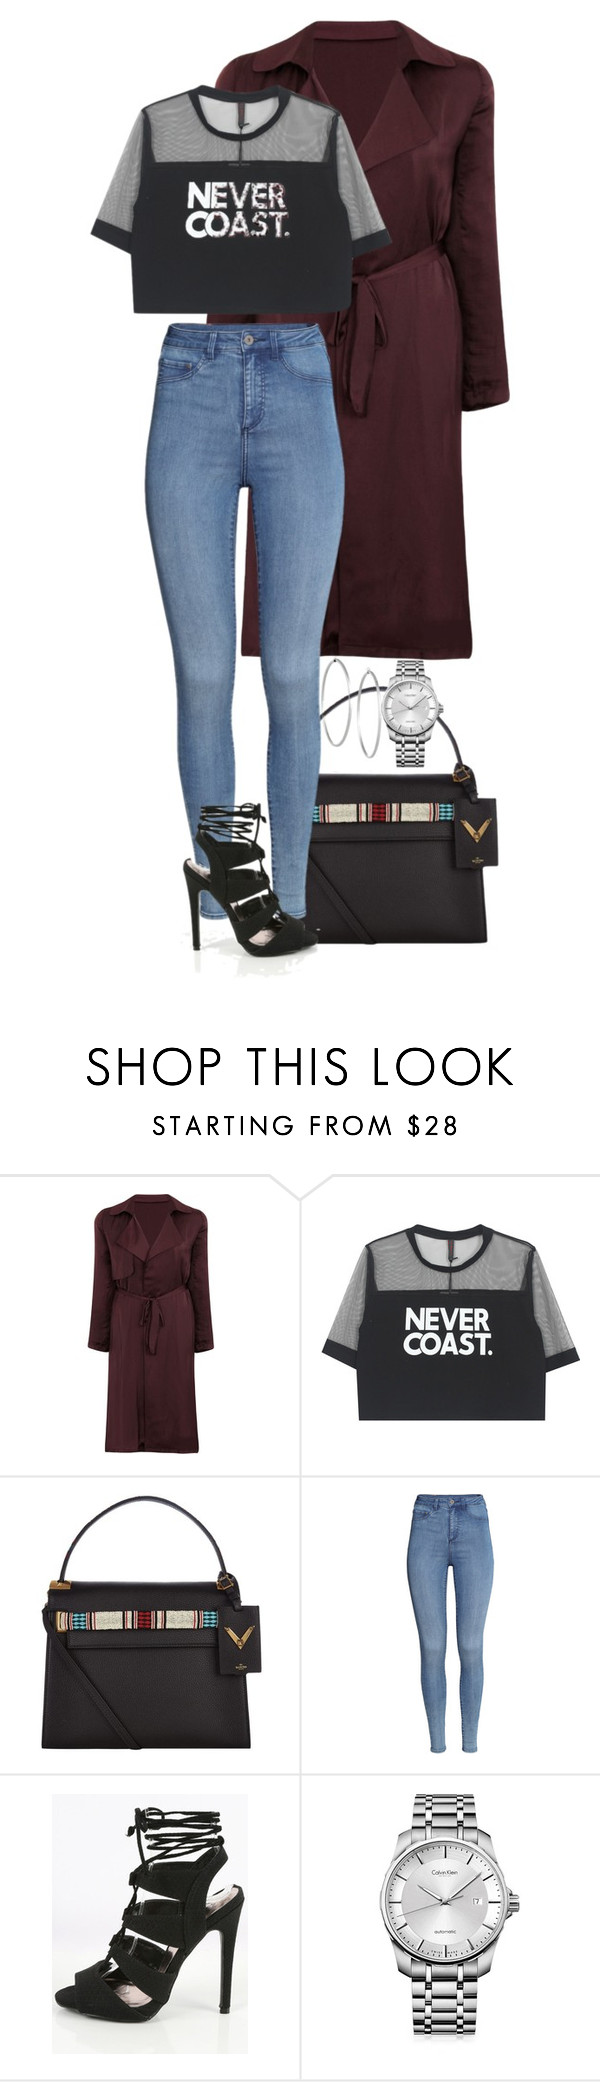 """""""90224"""" by sultrysalem ❤ liked on Polyvore featuring Valentino, H&M, Calvin Klein and Jennifer Fisher"""